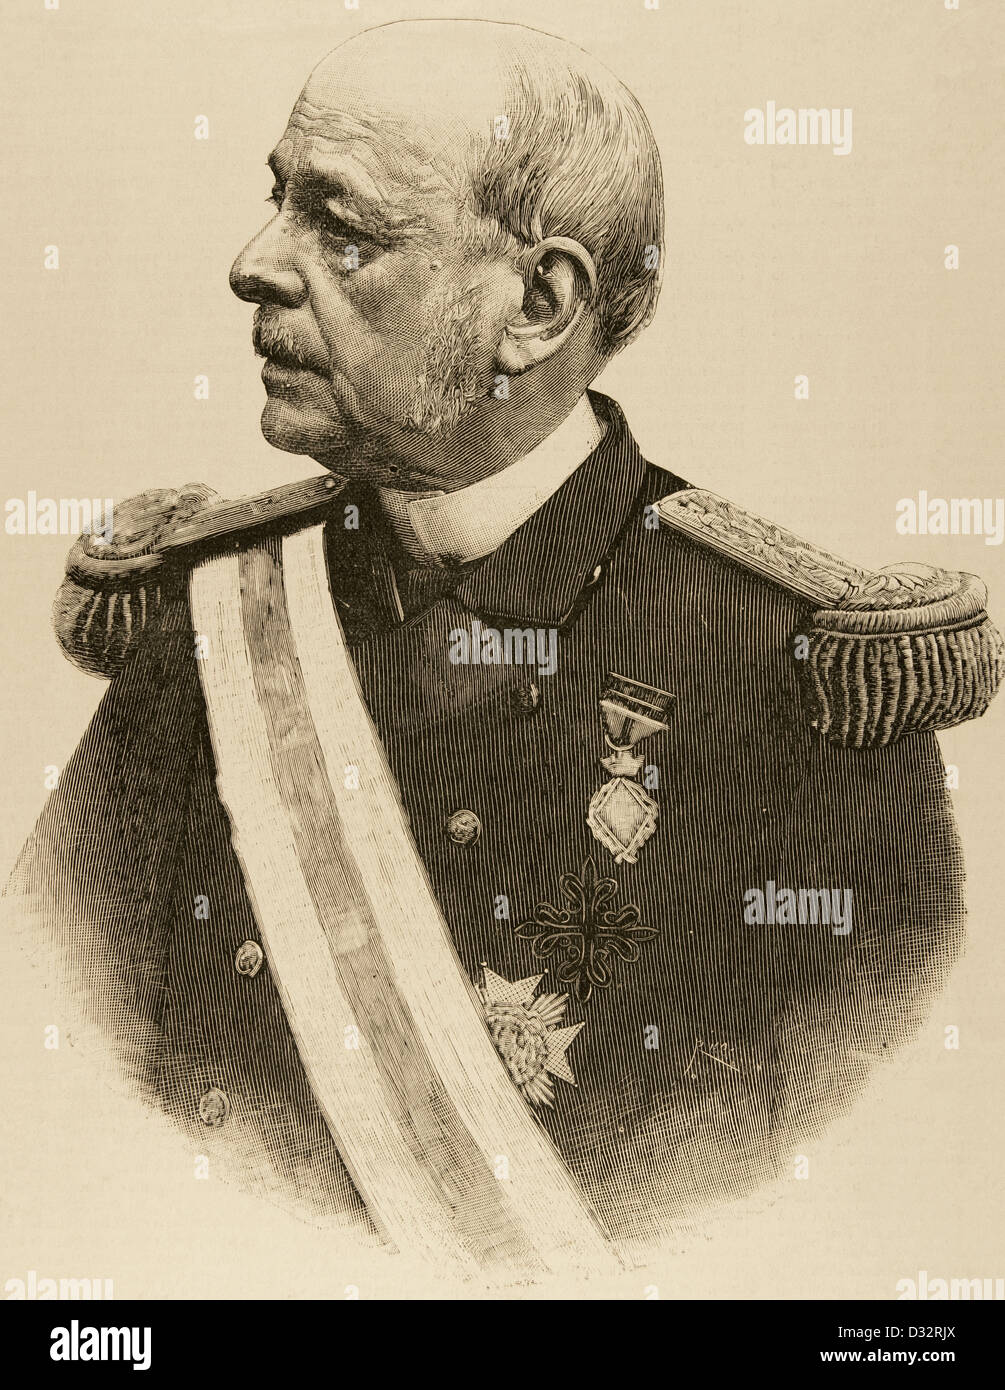 Jose Maria Beranger Ruiz de Apodaca (1824-1907). Spanish marine and politician. Engraving. - Stock Image